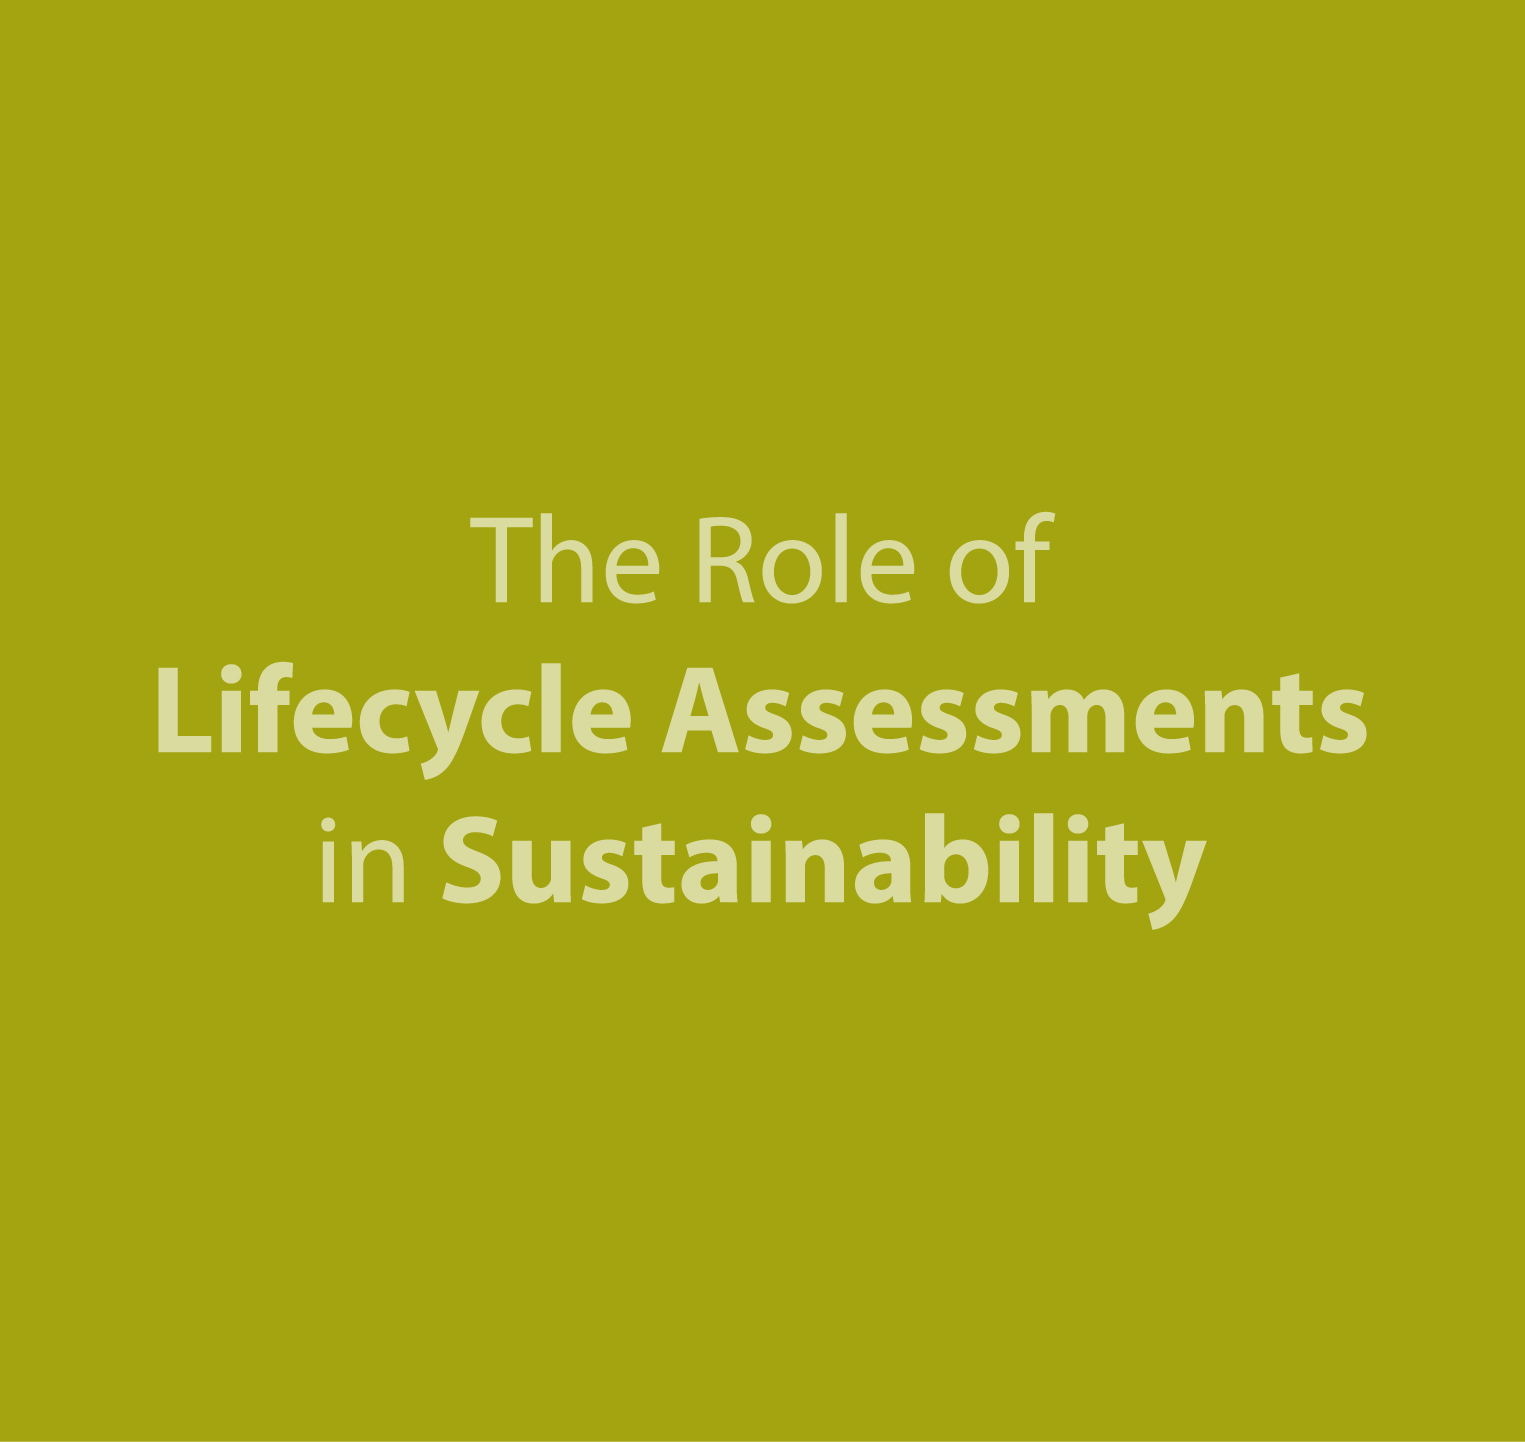 Lifecycle-Assessment.jpg